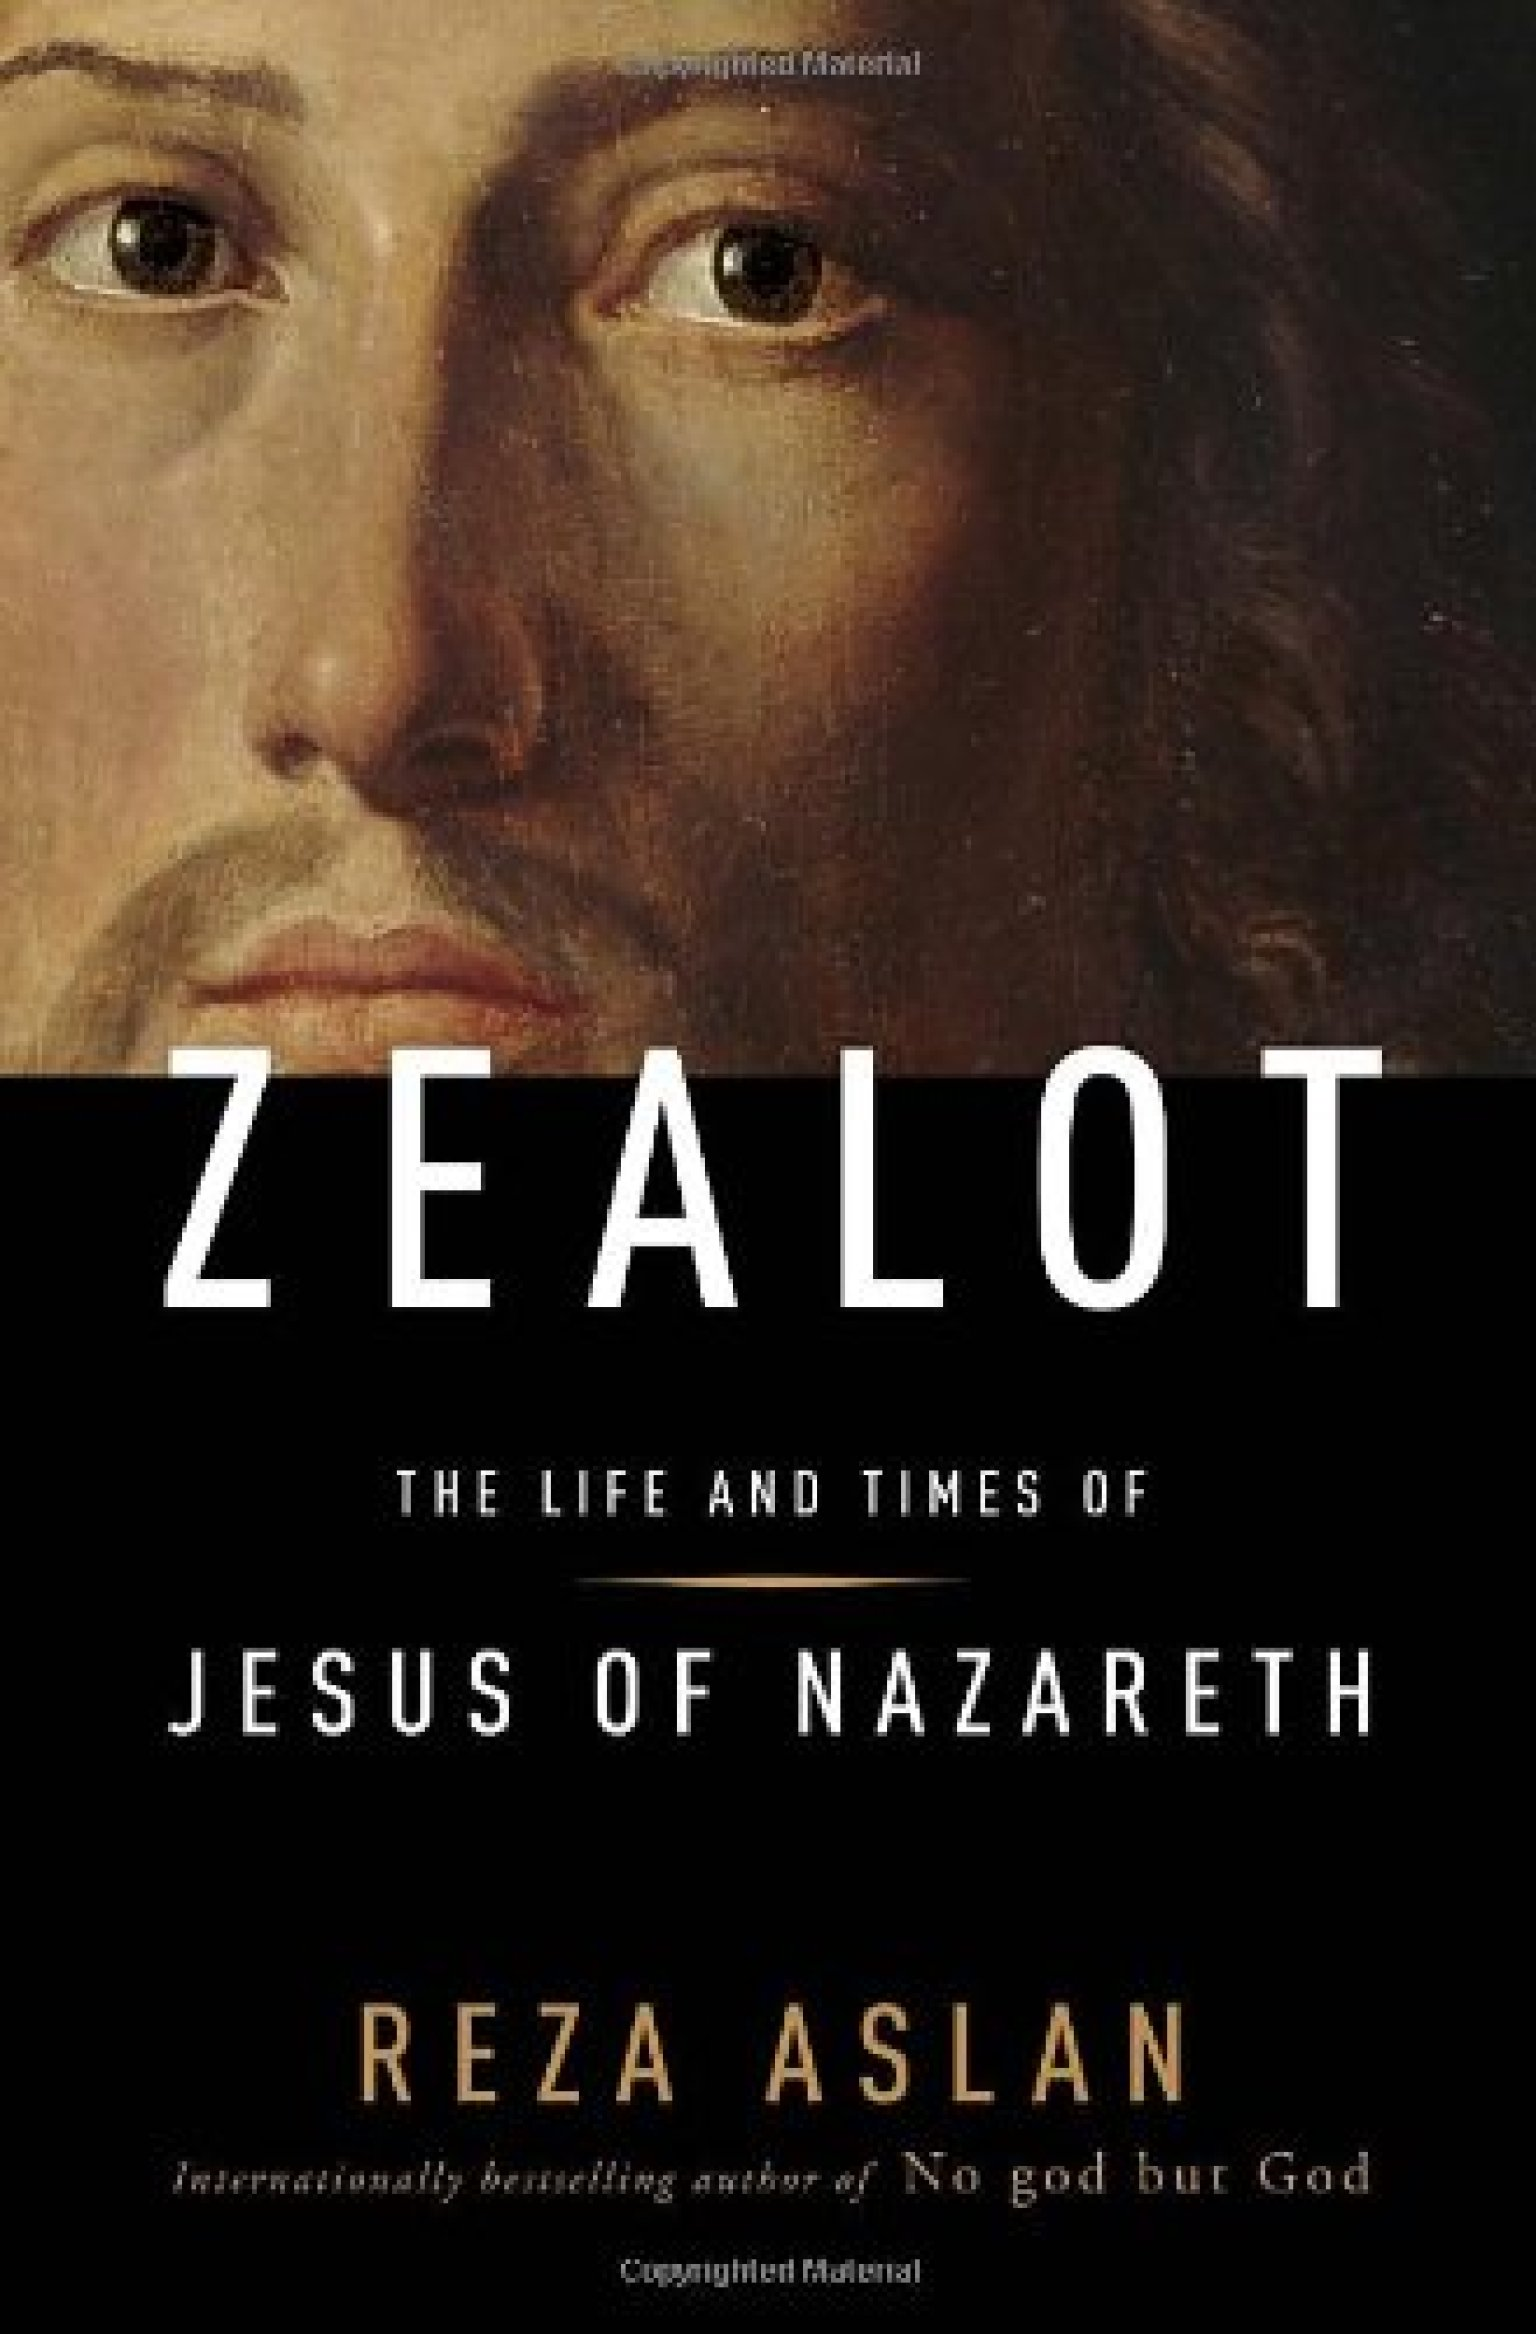 The Life Of Adventure: Zealot: The Life And Times Of Jesus Of Nazareth By Reza